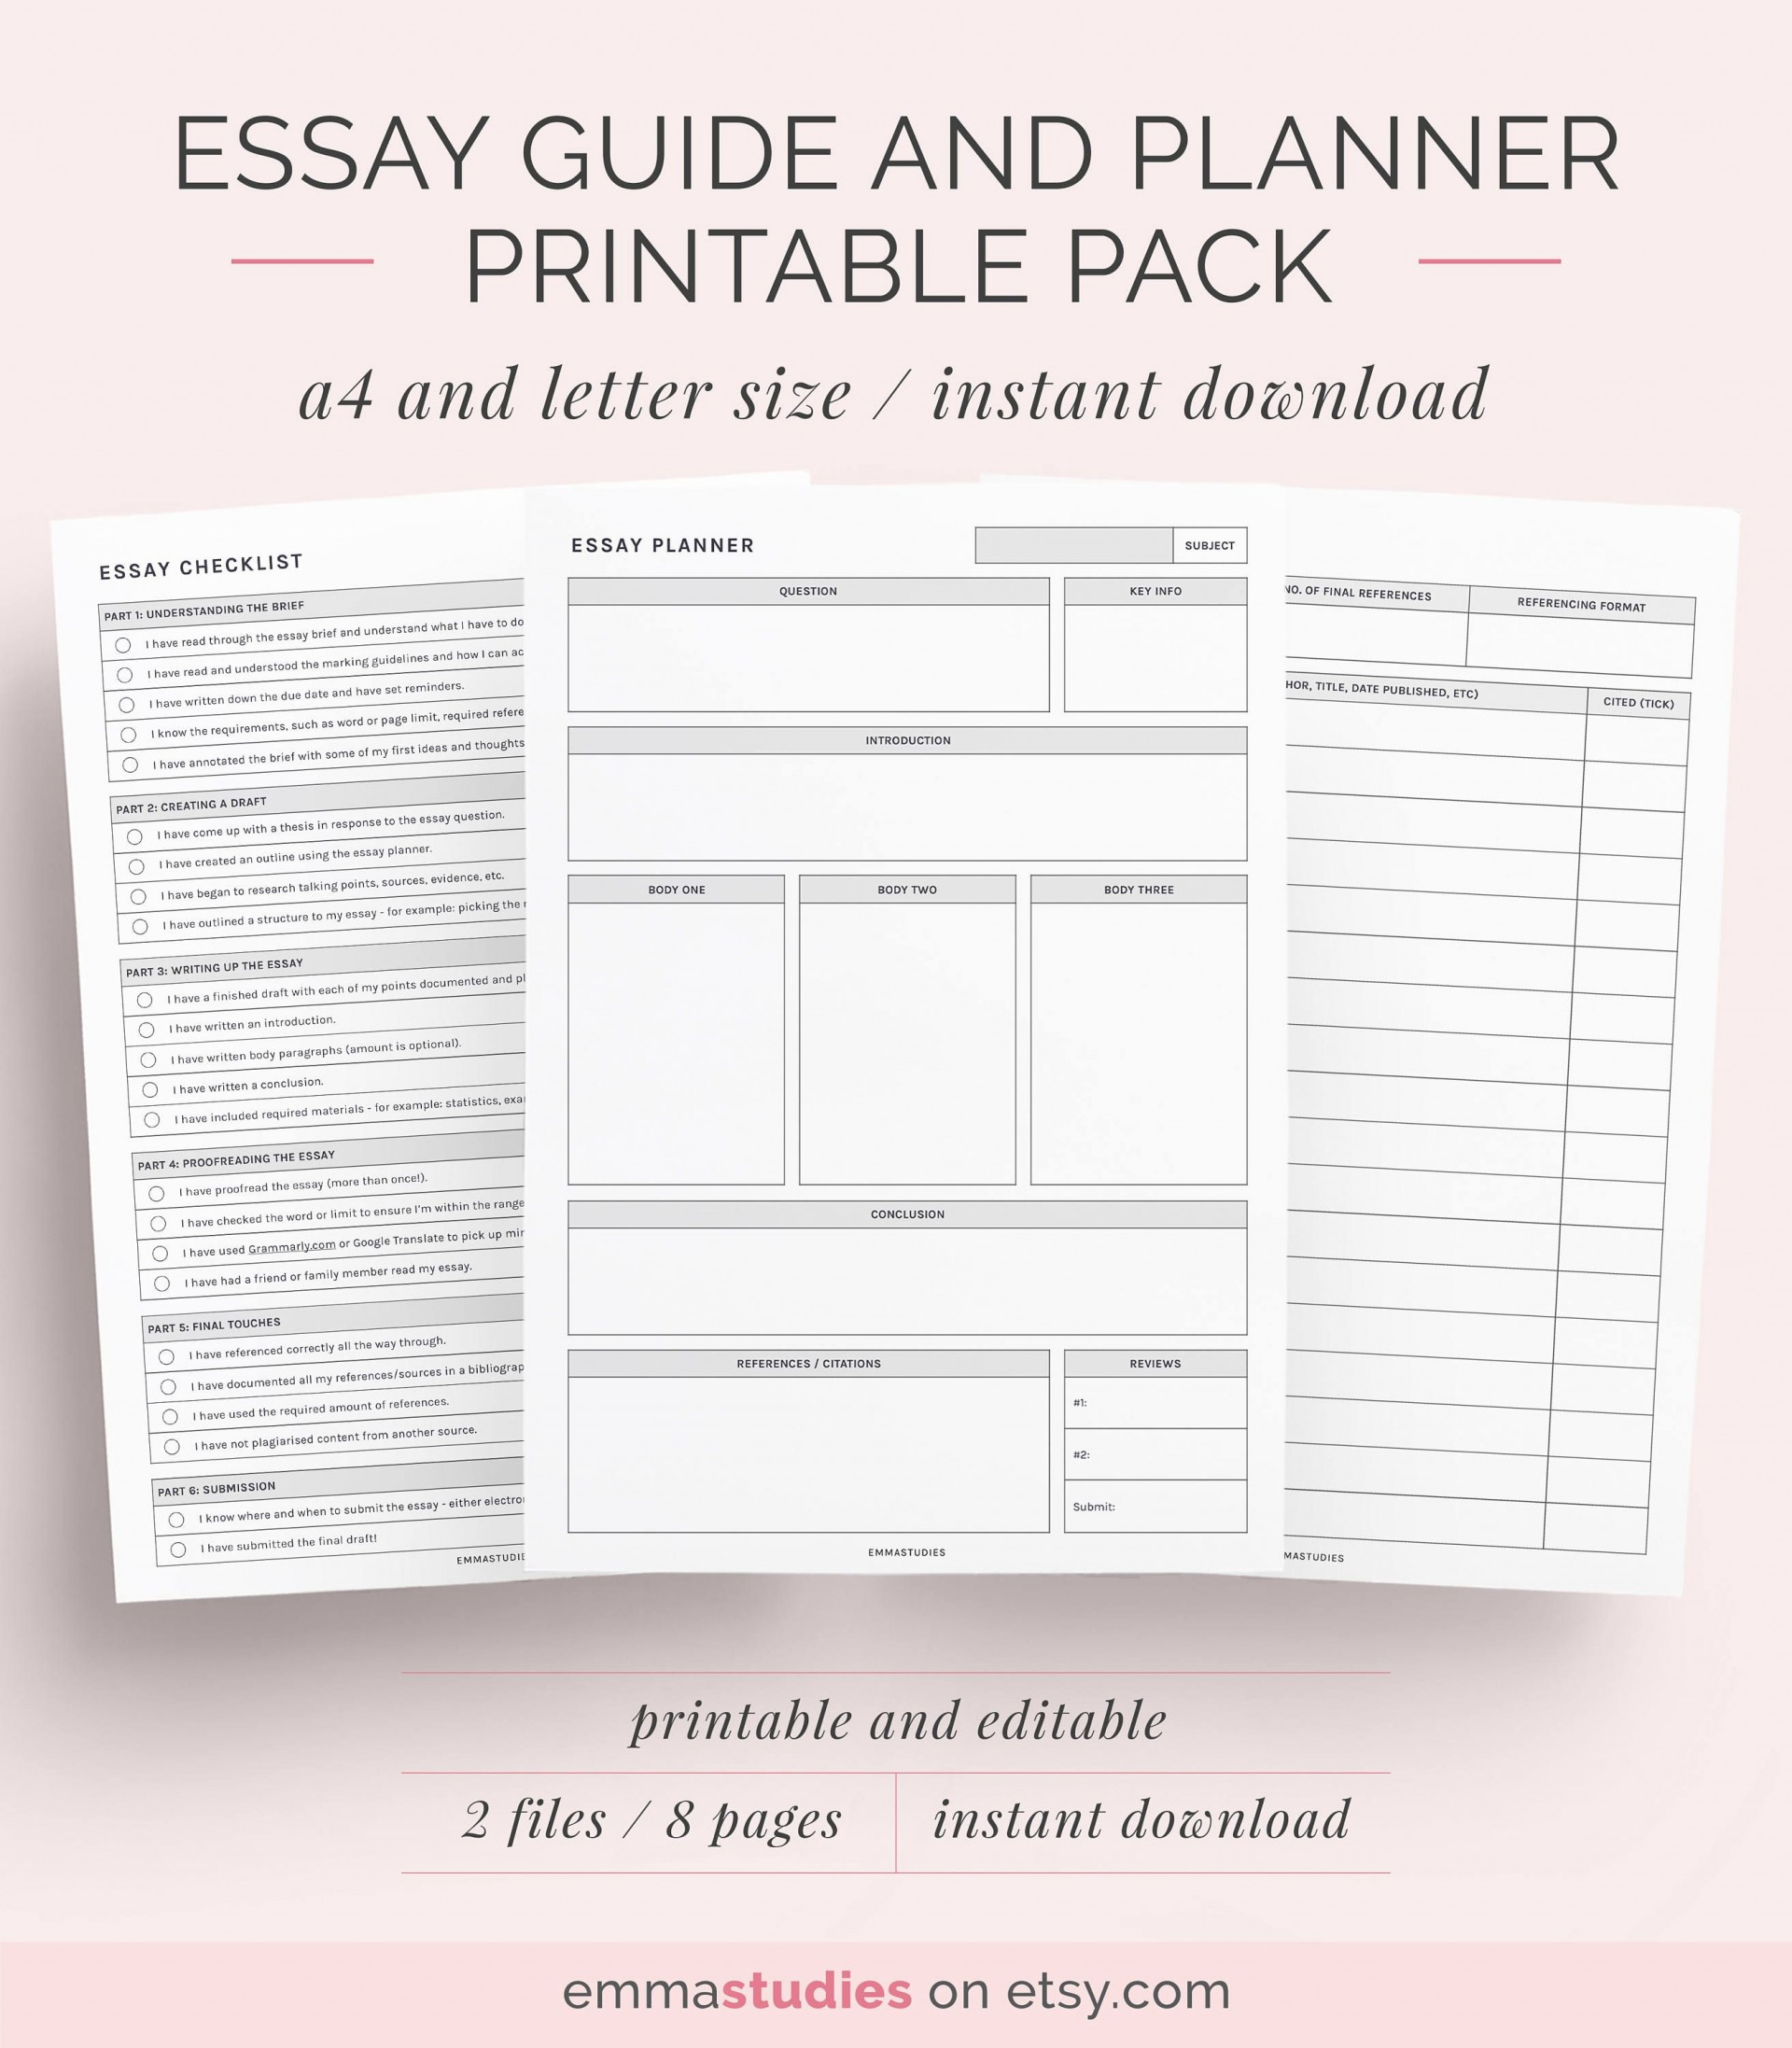 003 Essay Planner Example Amazing Night Before Pdf Sheet Plans Examples 1920